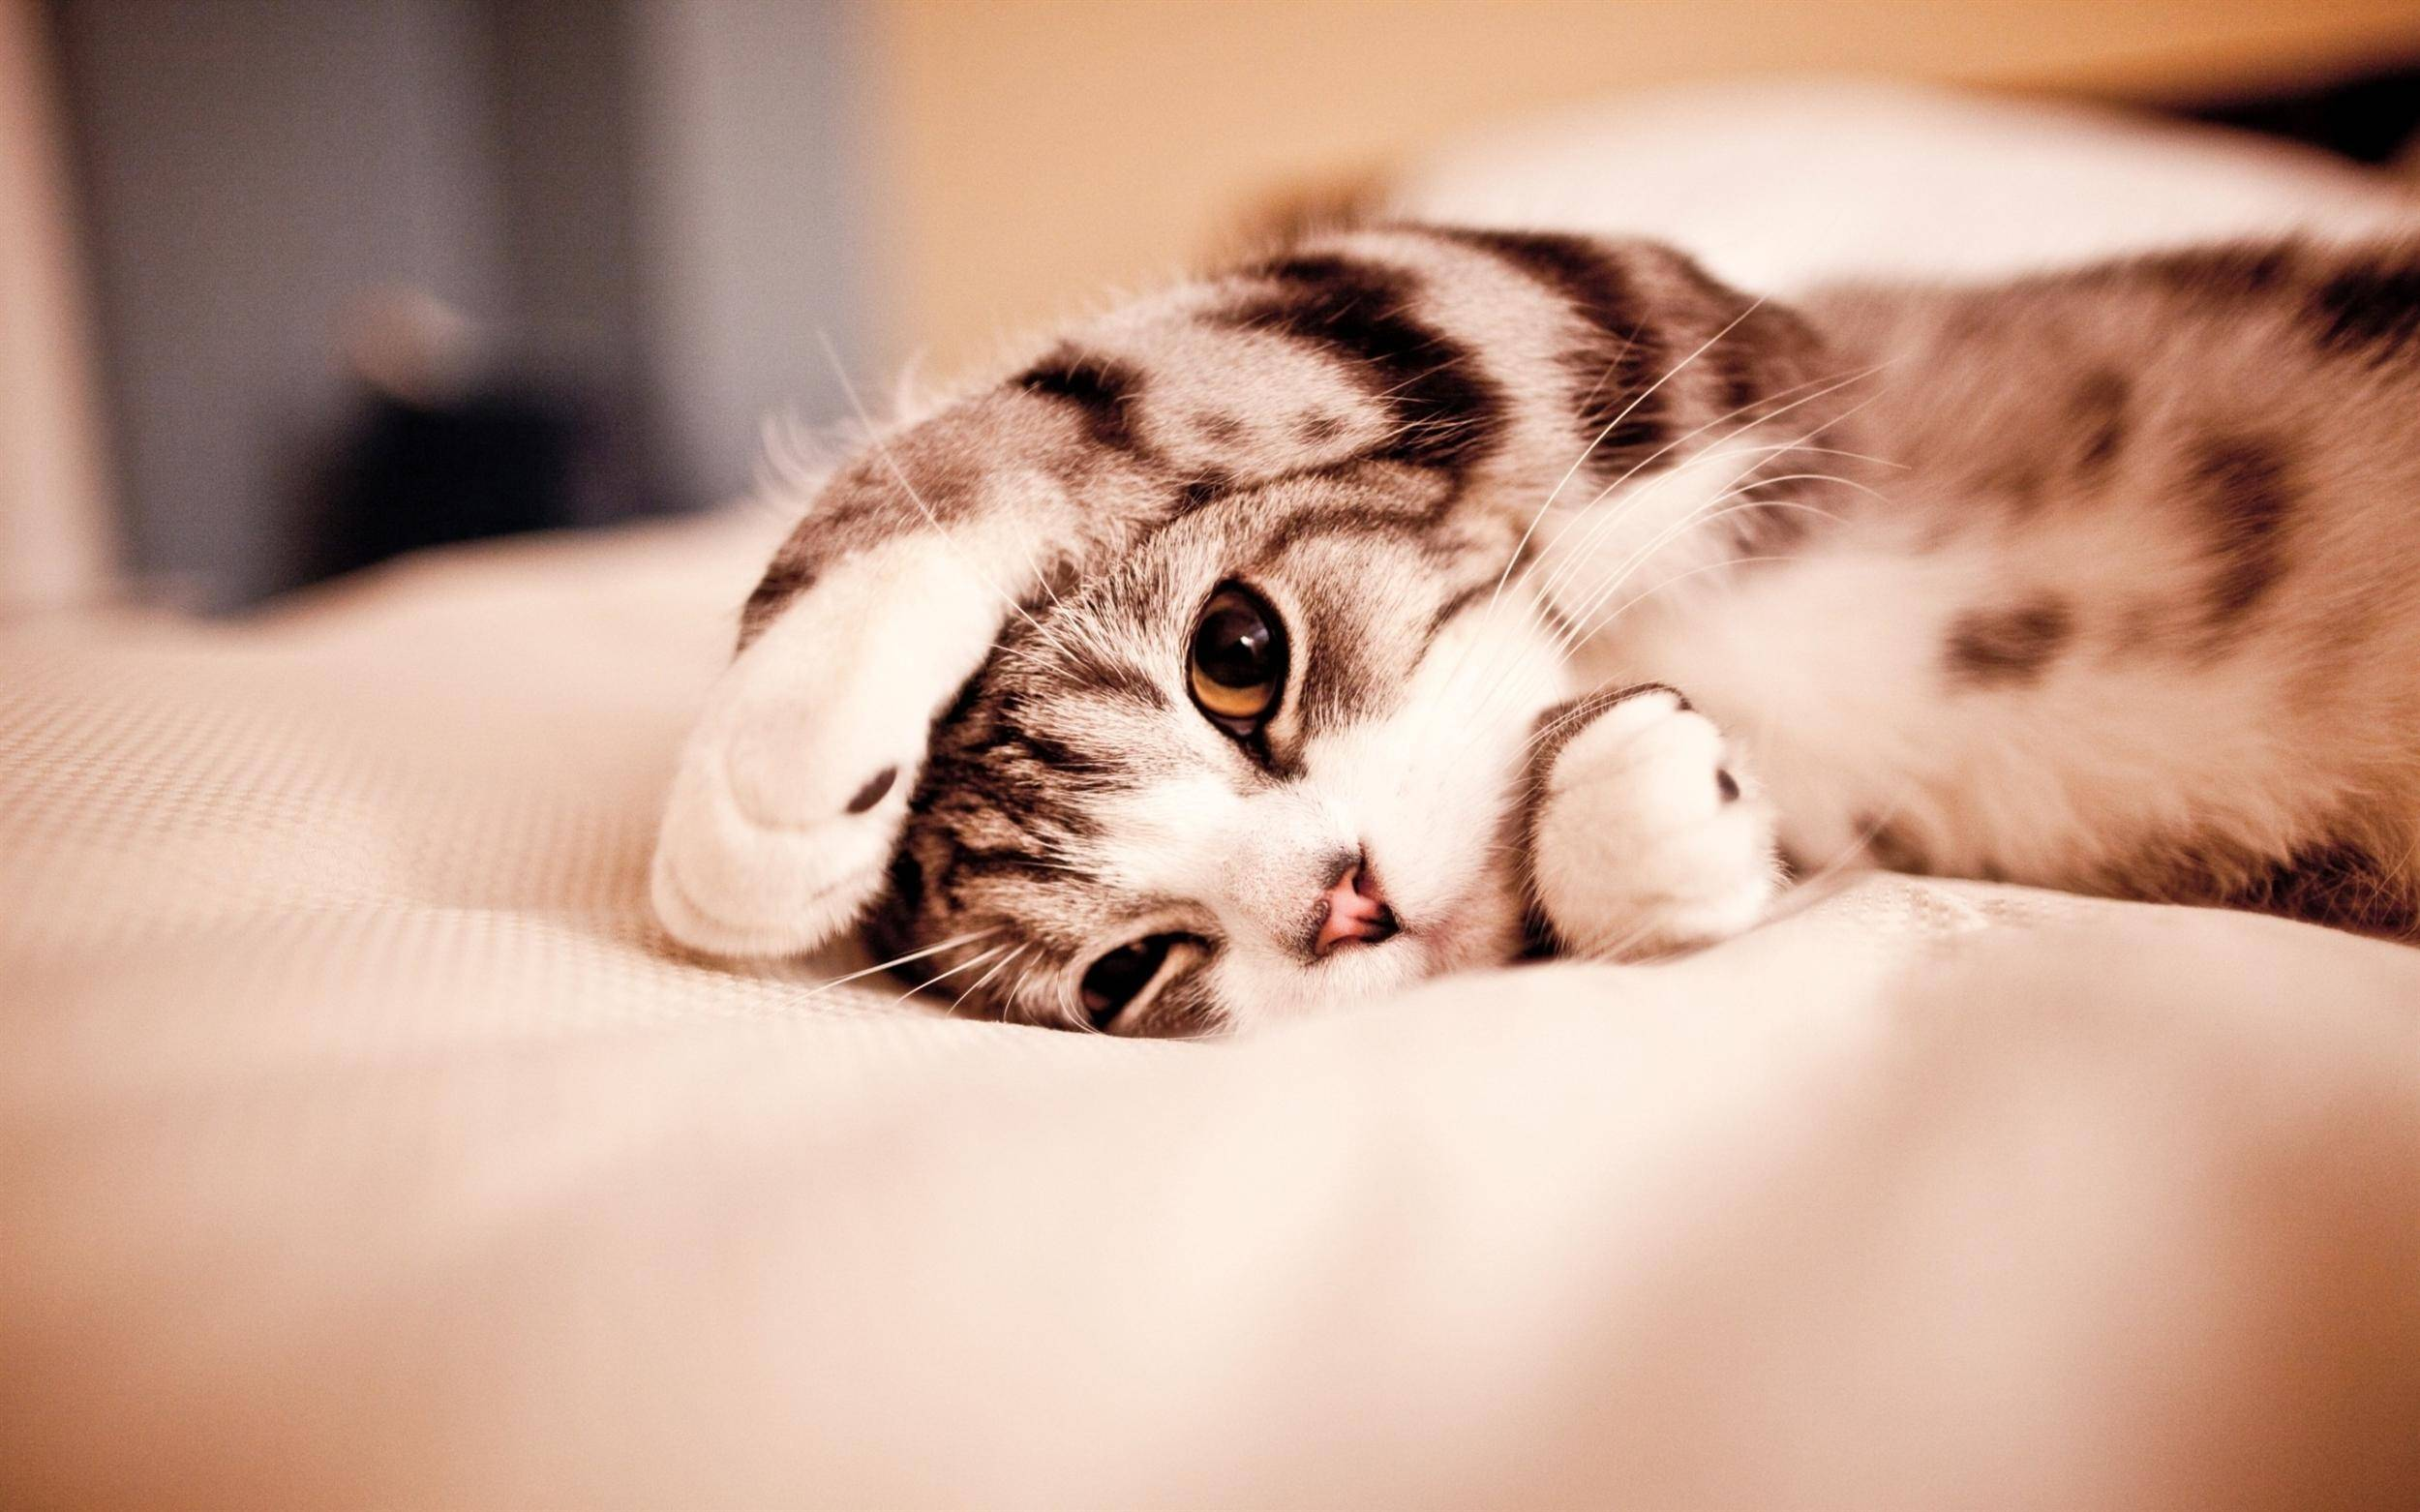 hd cat images free download 2